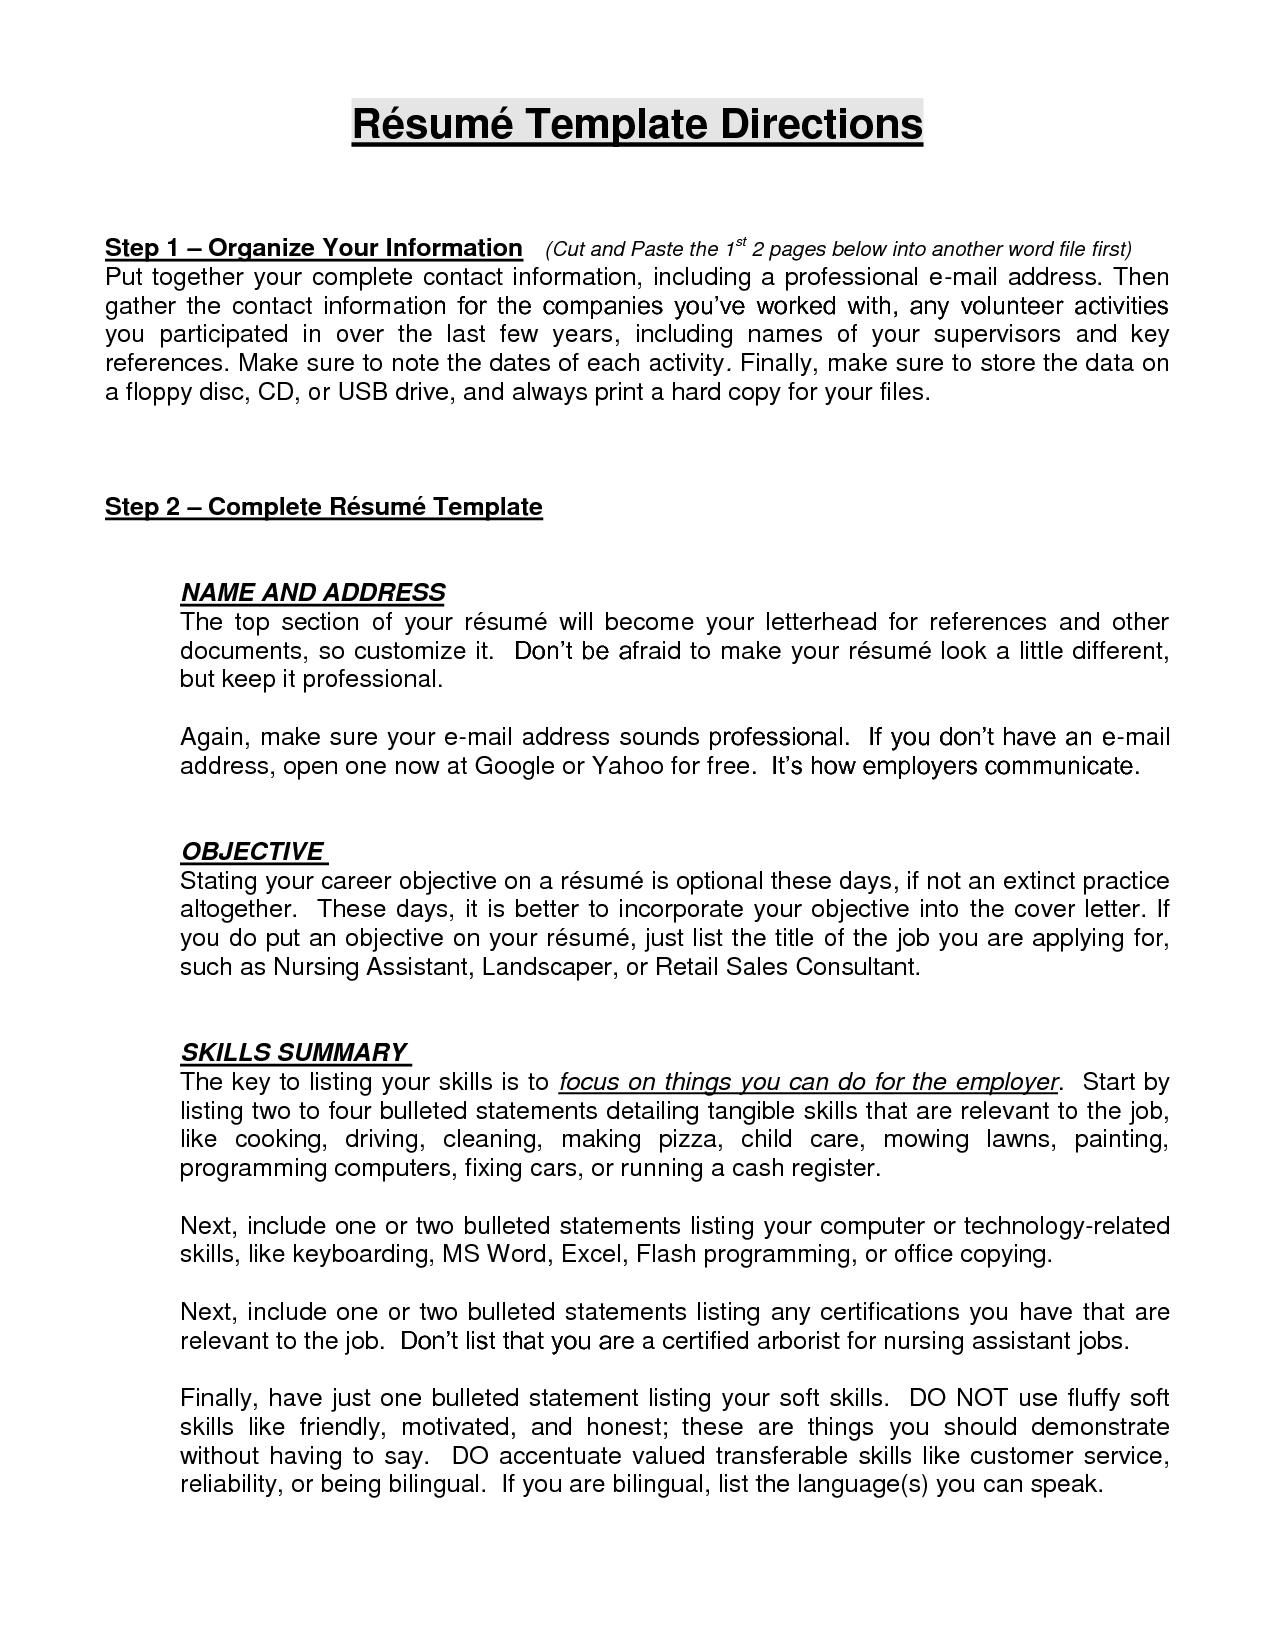 Resume objective statements ideas httpjobresume resume objective statements ideas httpjobresumeresume objective statements ideas altavistaventures Images